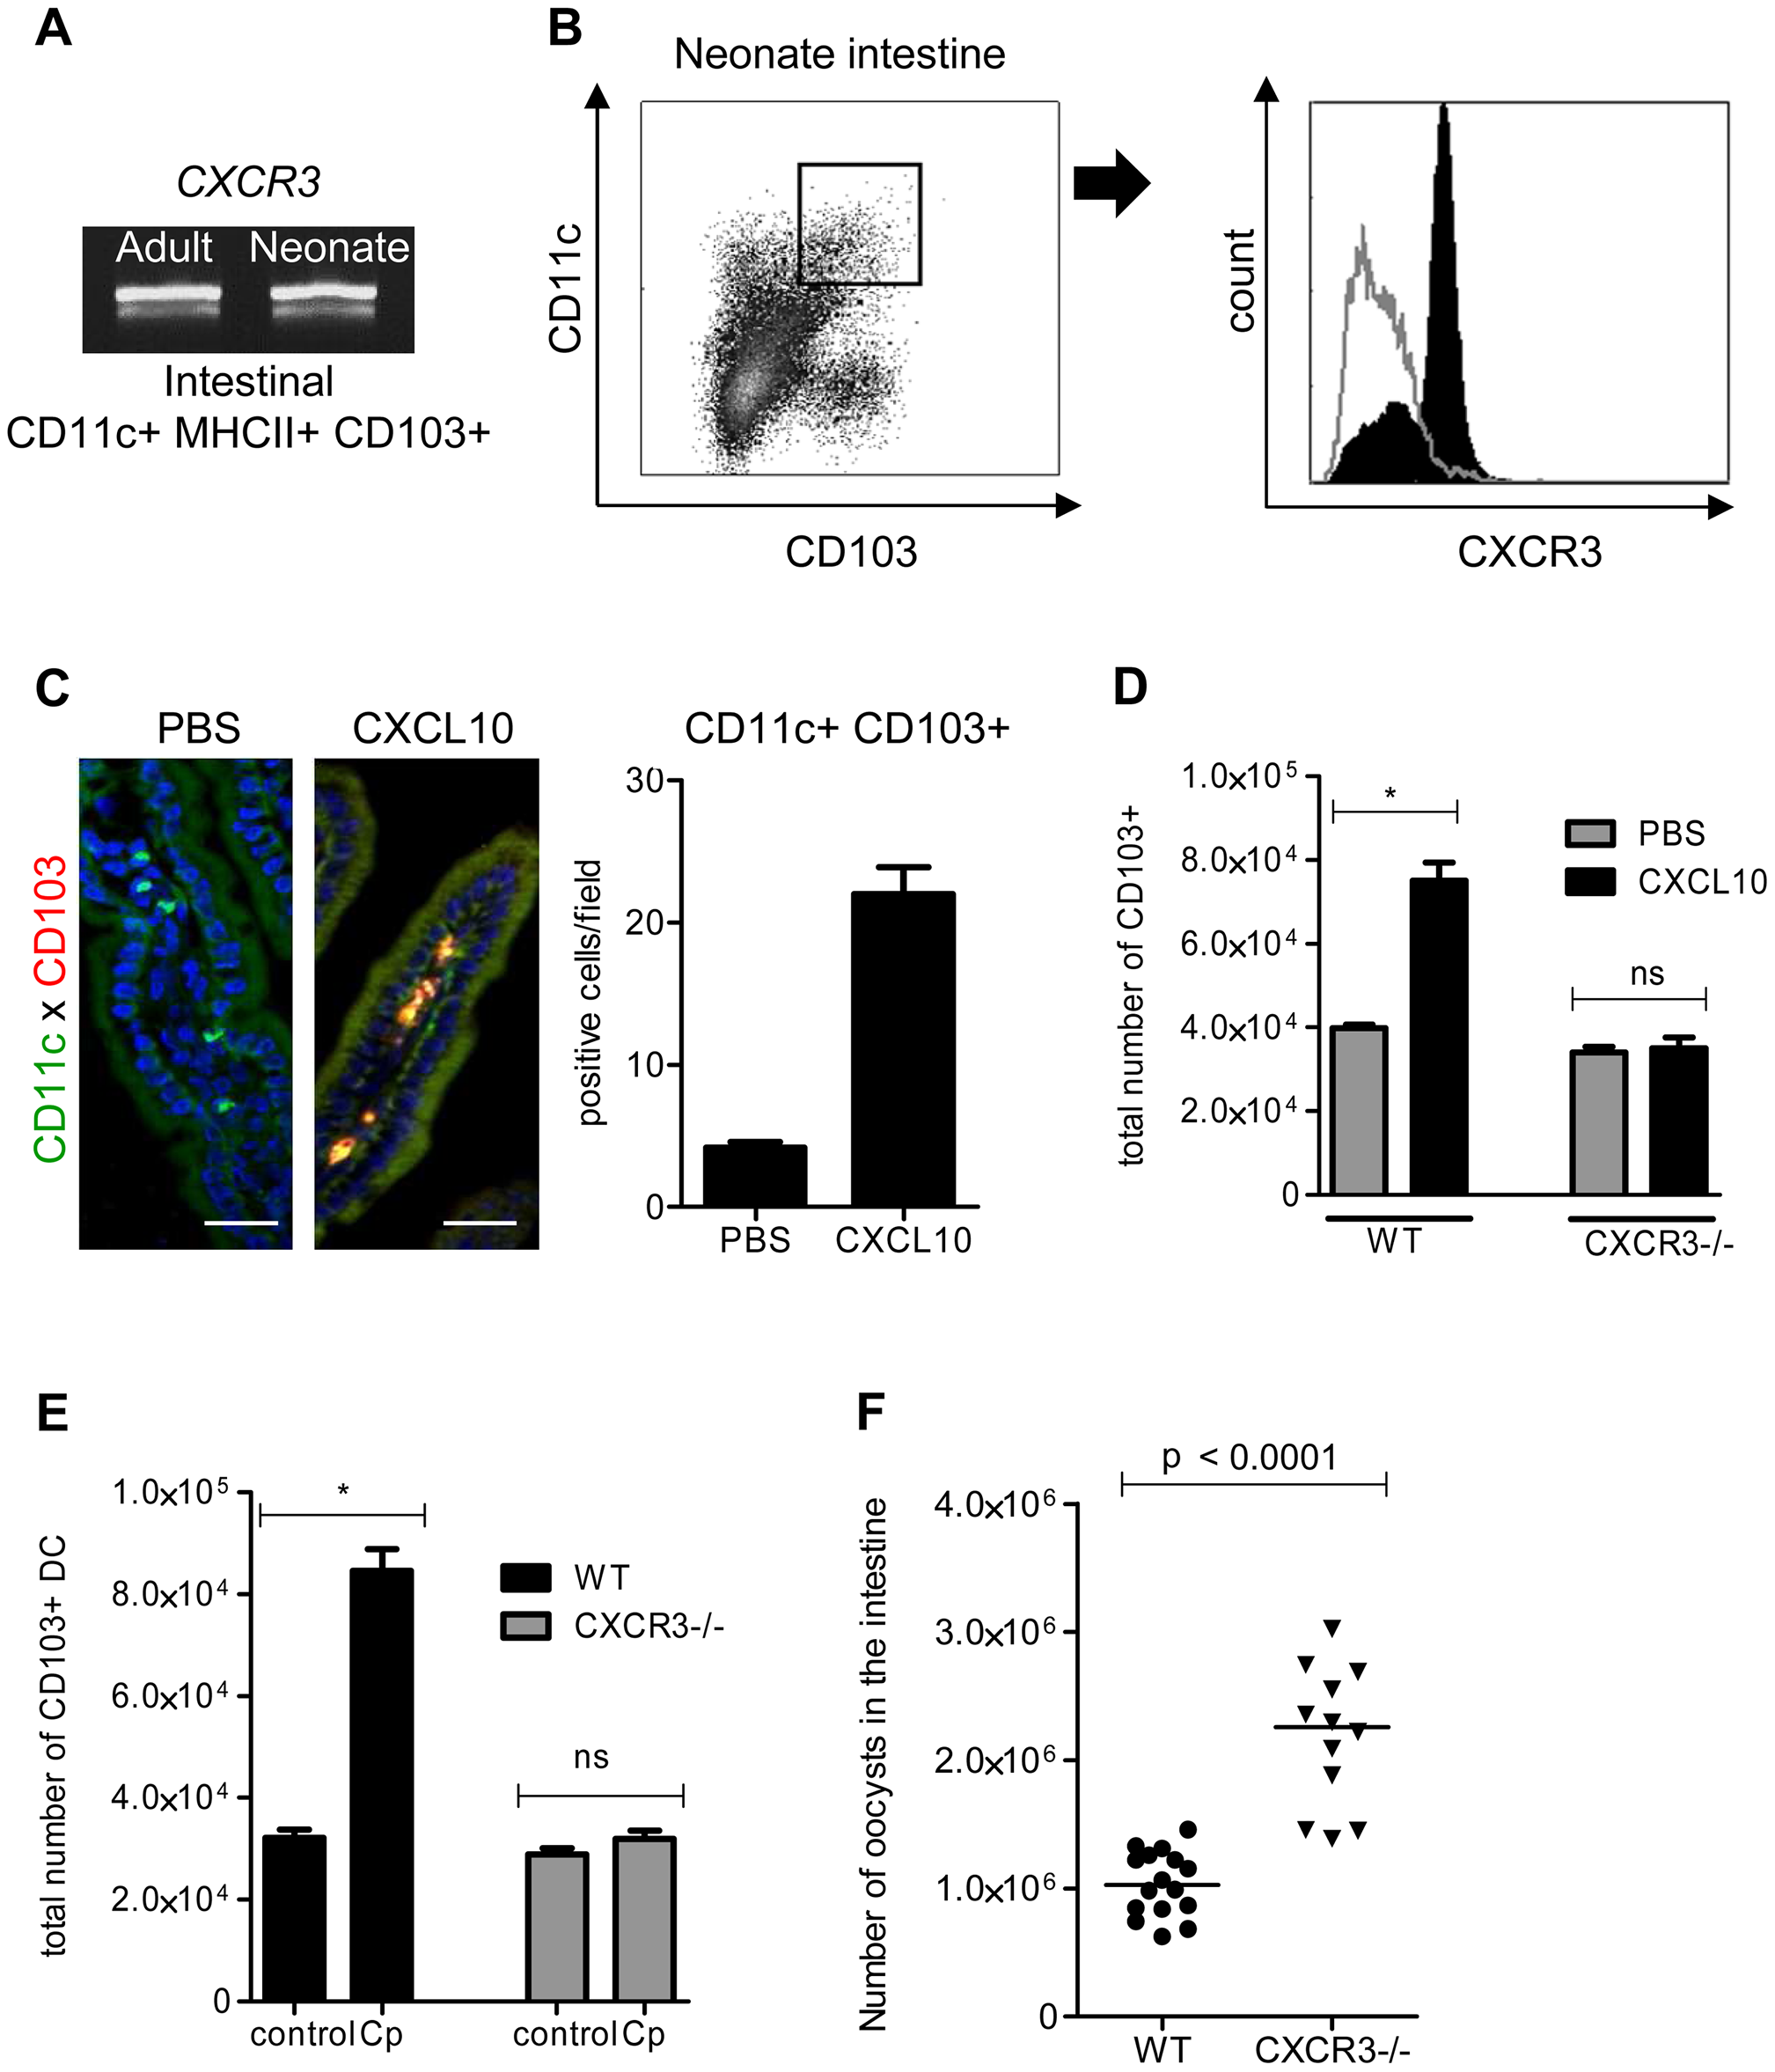 The chemokine receptor CXCR3 plays a major role in the recruitment of CD103+ DC during <i>C. parvum</i> infection.